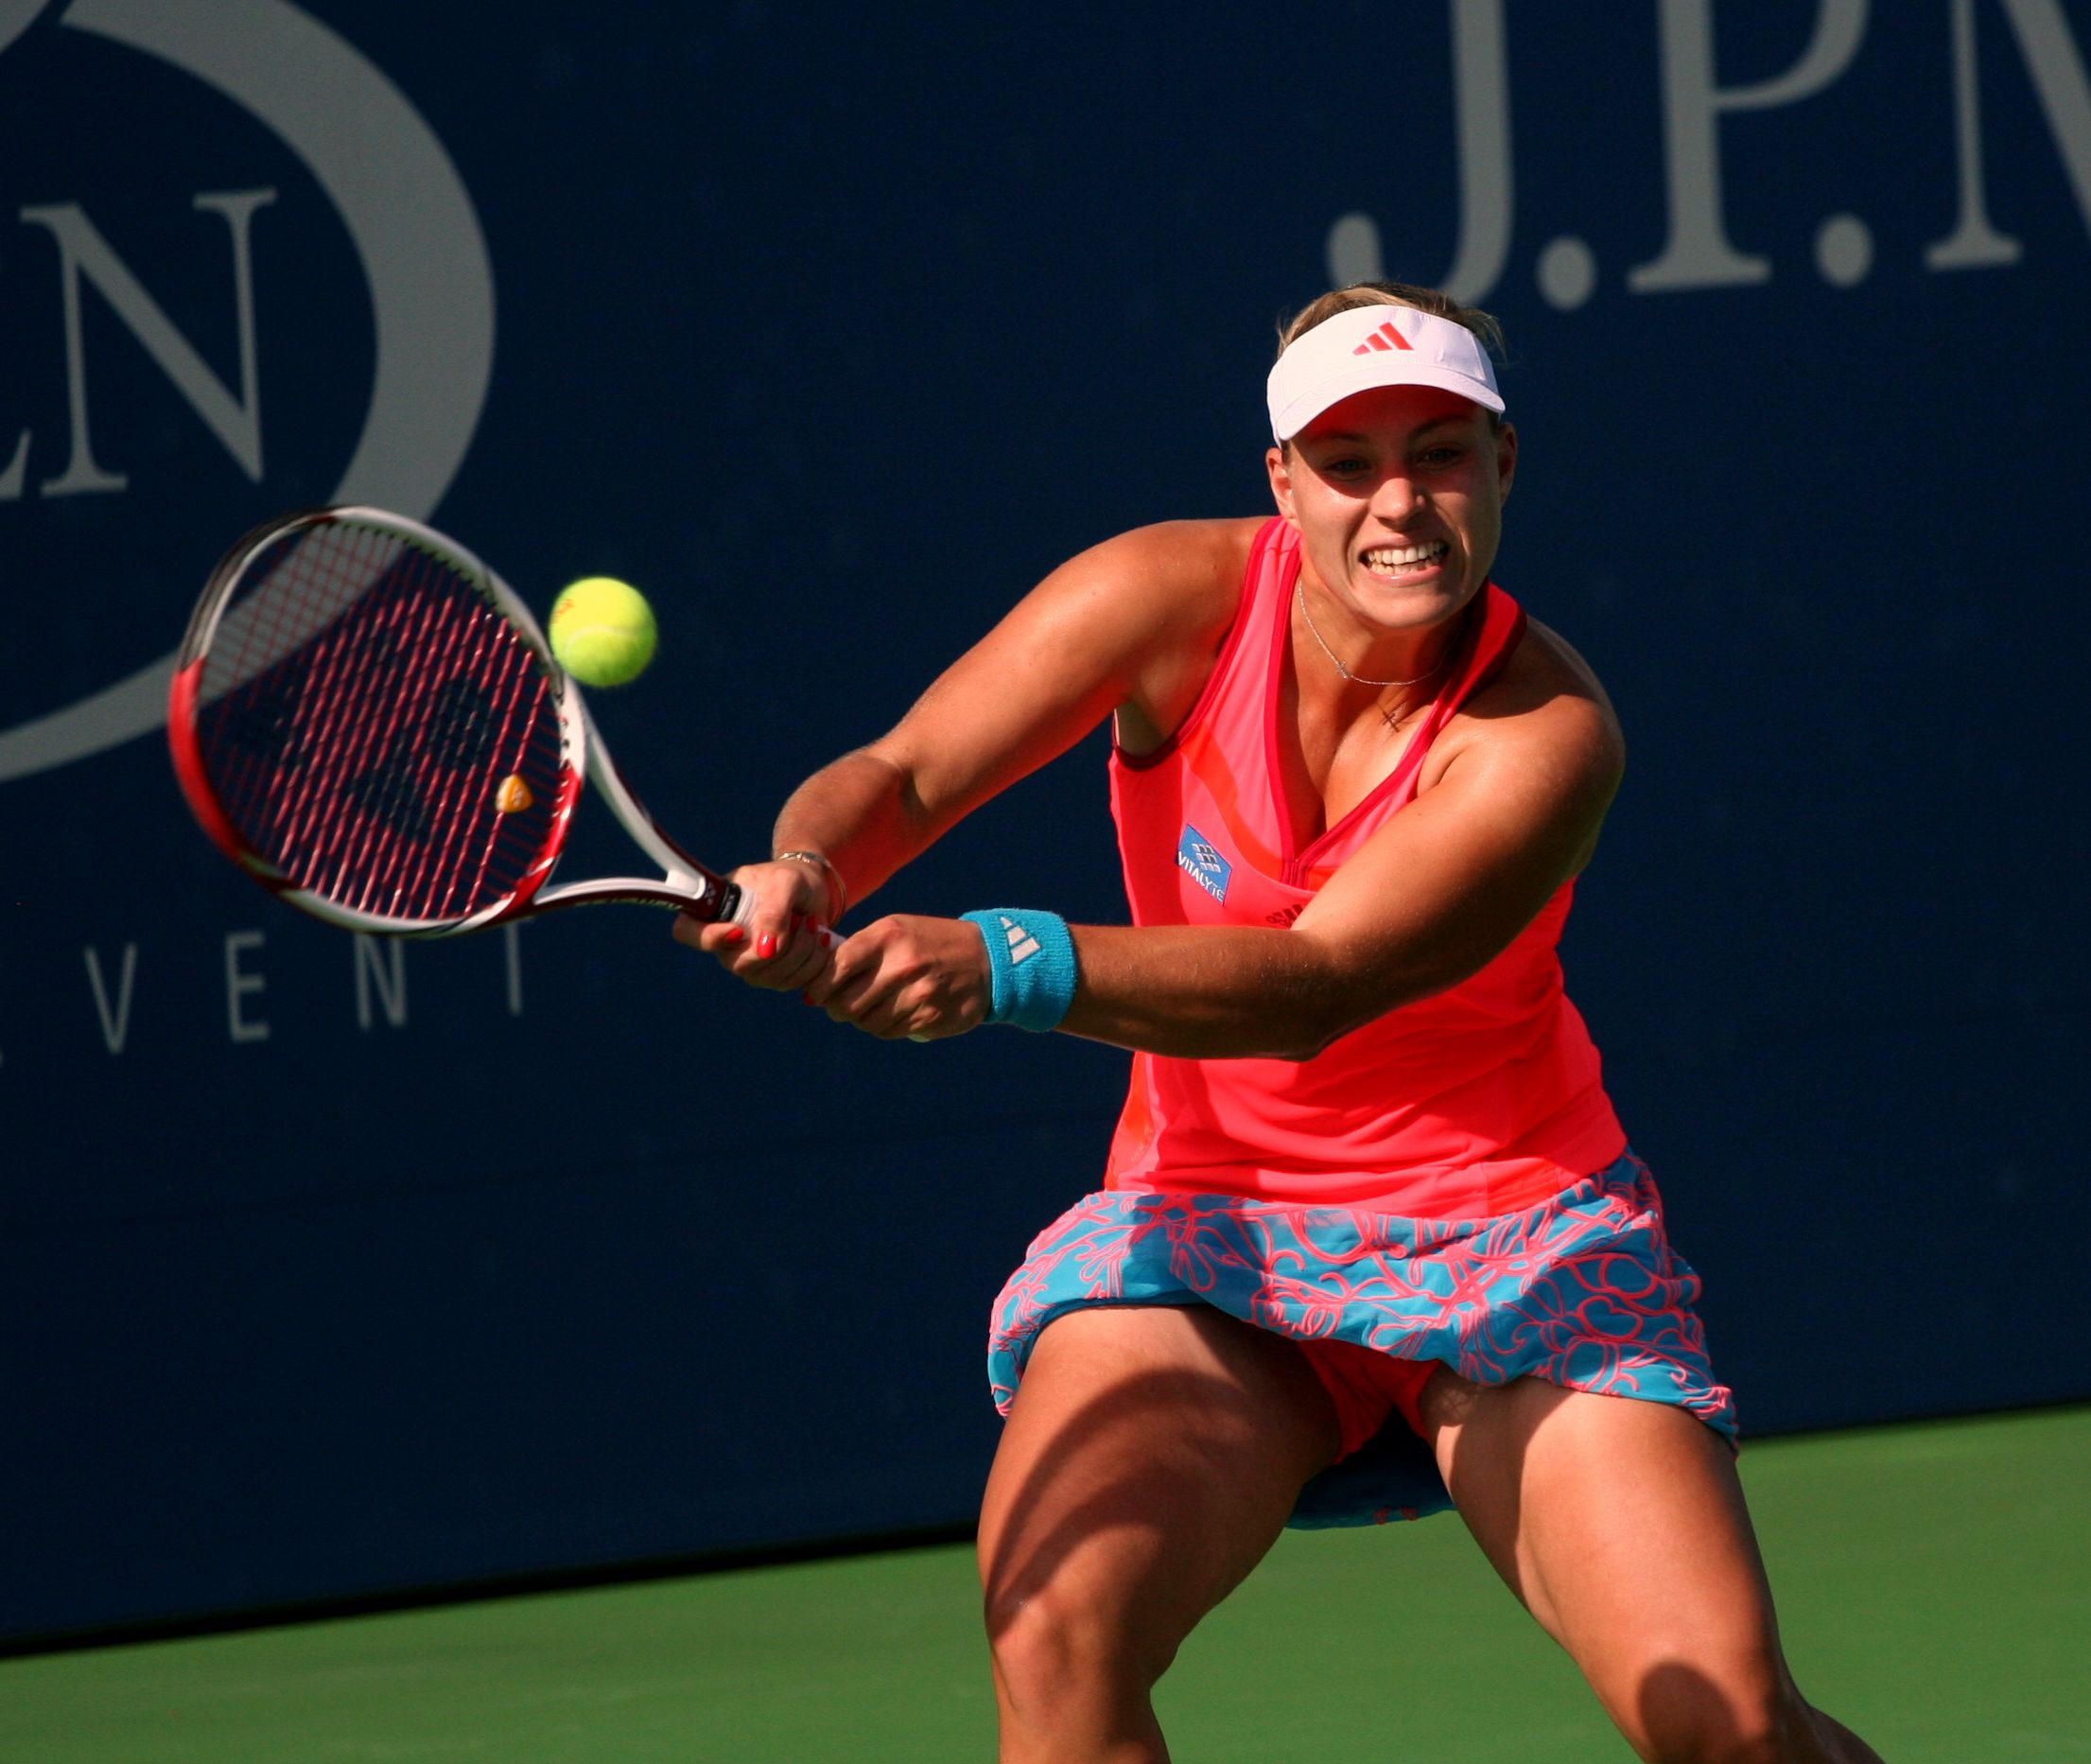 Description Angelique Kerber 2011 US Open.jpg